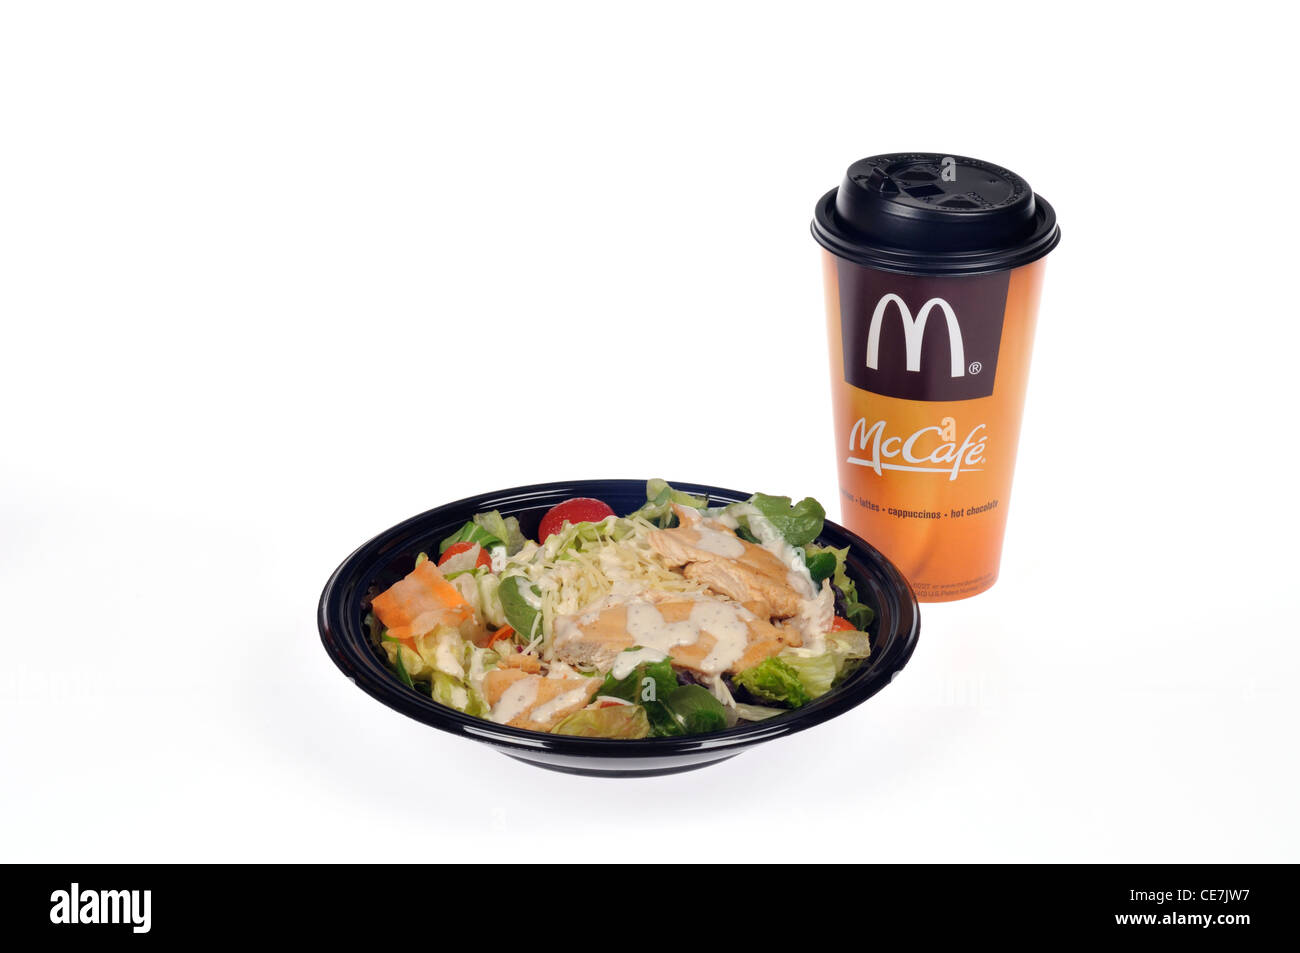 McDonalds grilled chicken caesar salad with a cup of McCafe hot coffee on white background cutout. - Stock Image